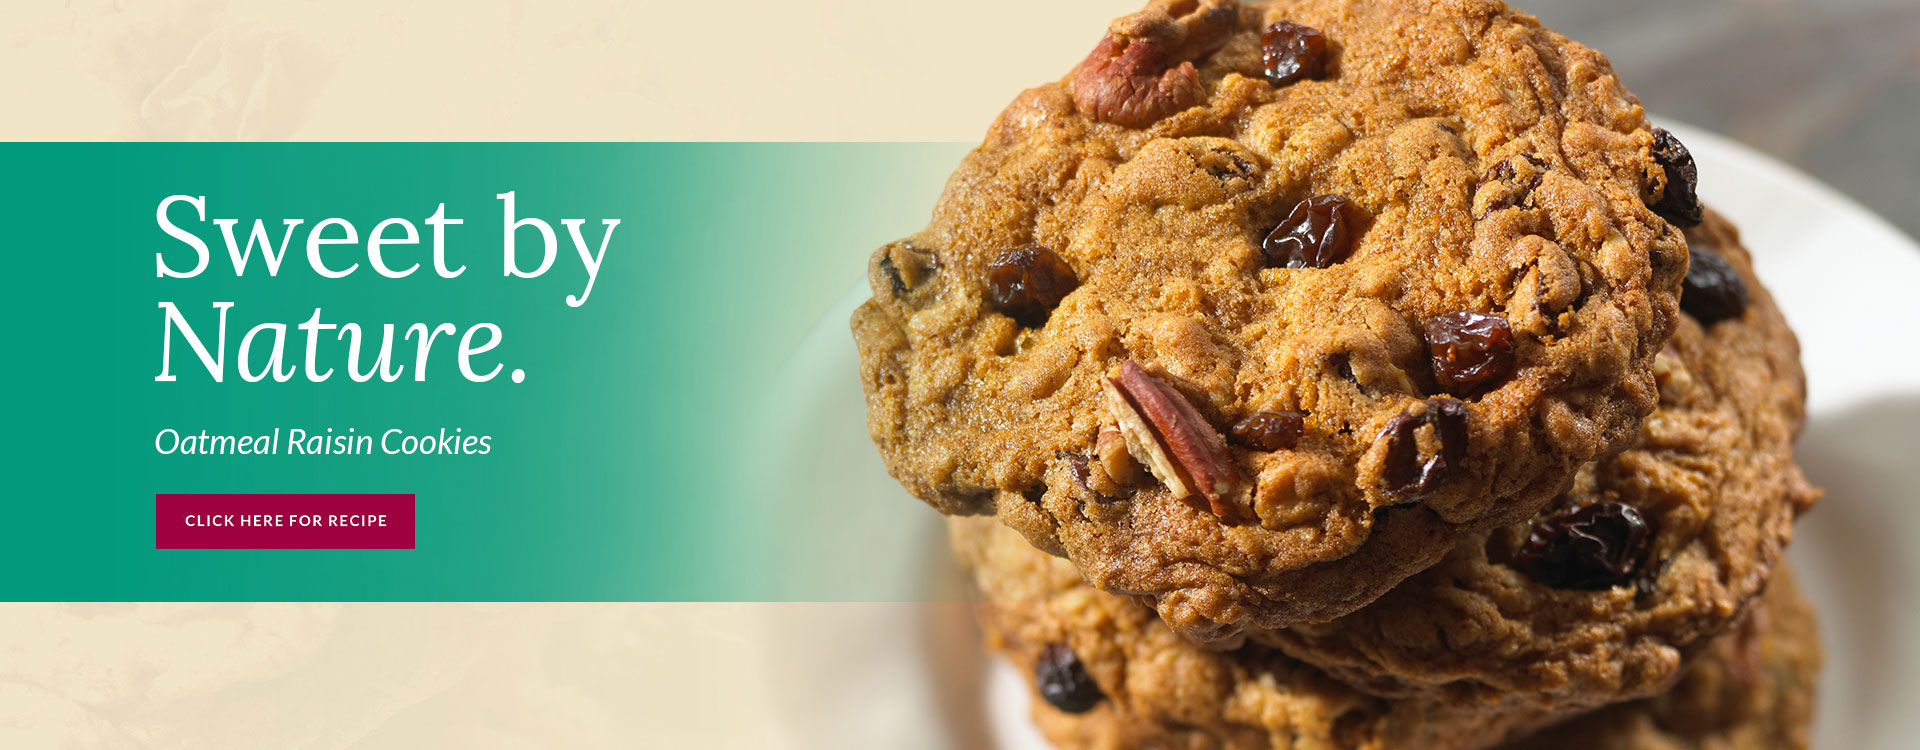 Our Growers Favorite Oatmeal Raisin Cookies